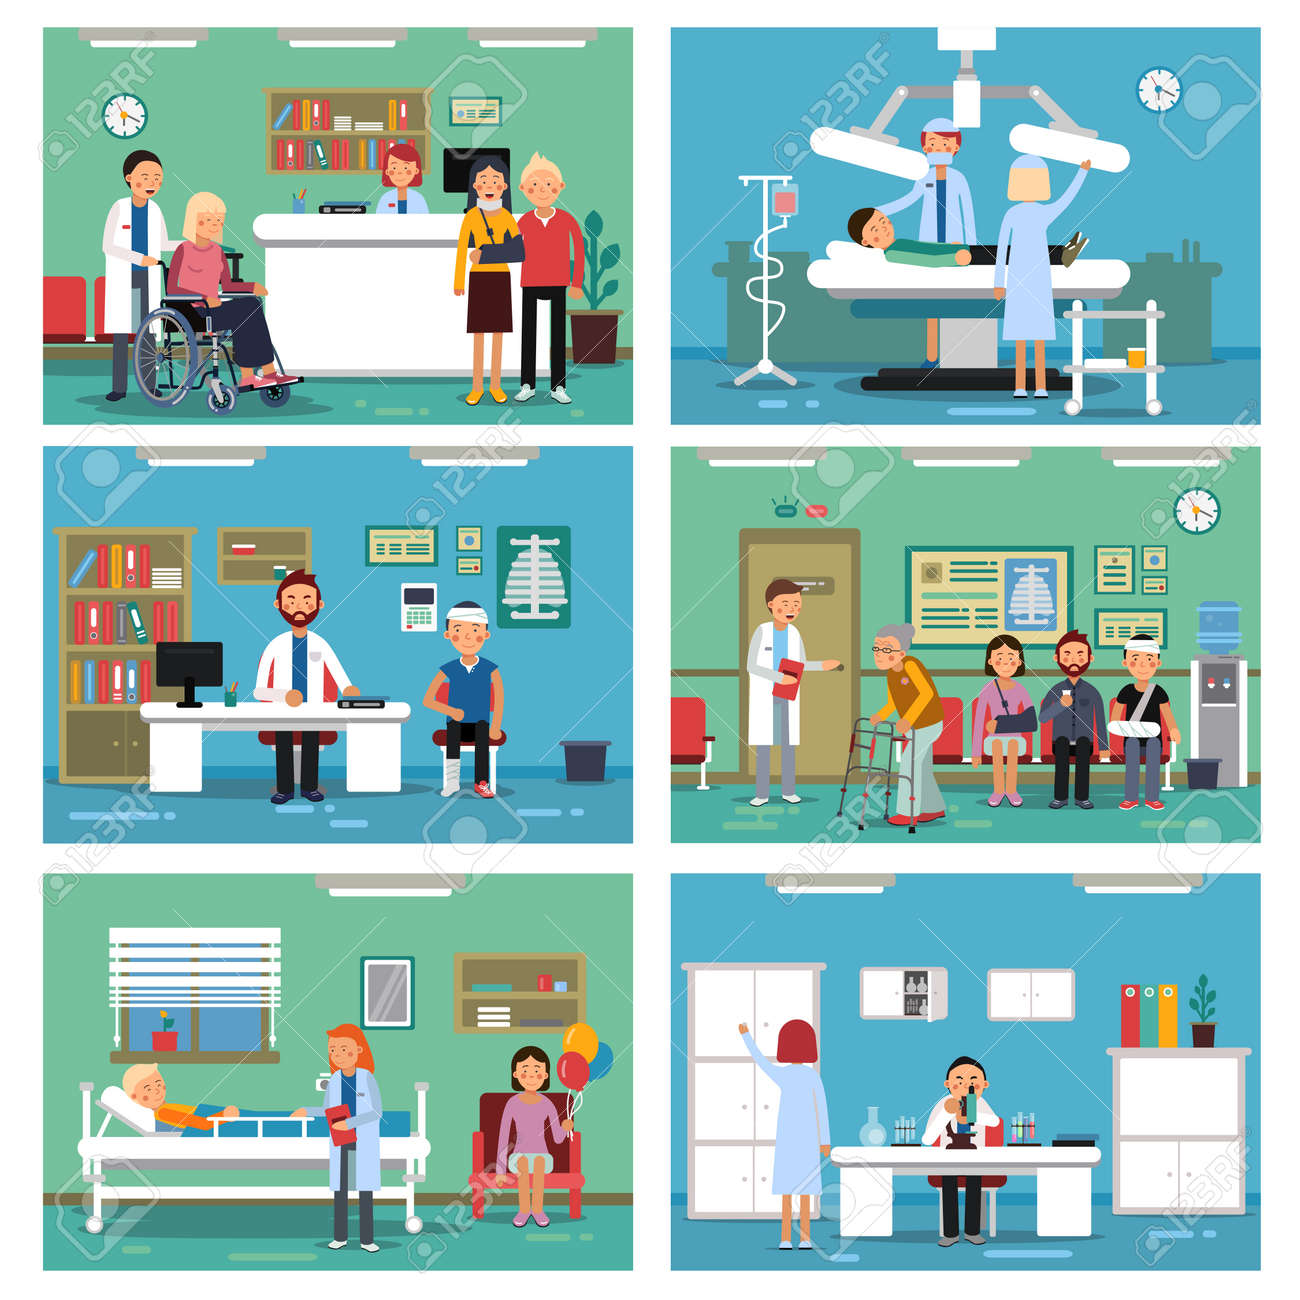 Medical personnel at work. Nurse doctor and patients in hospital interiors. Vector illustration - 165880011